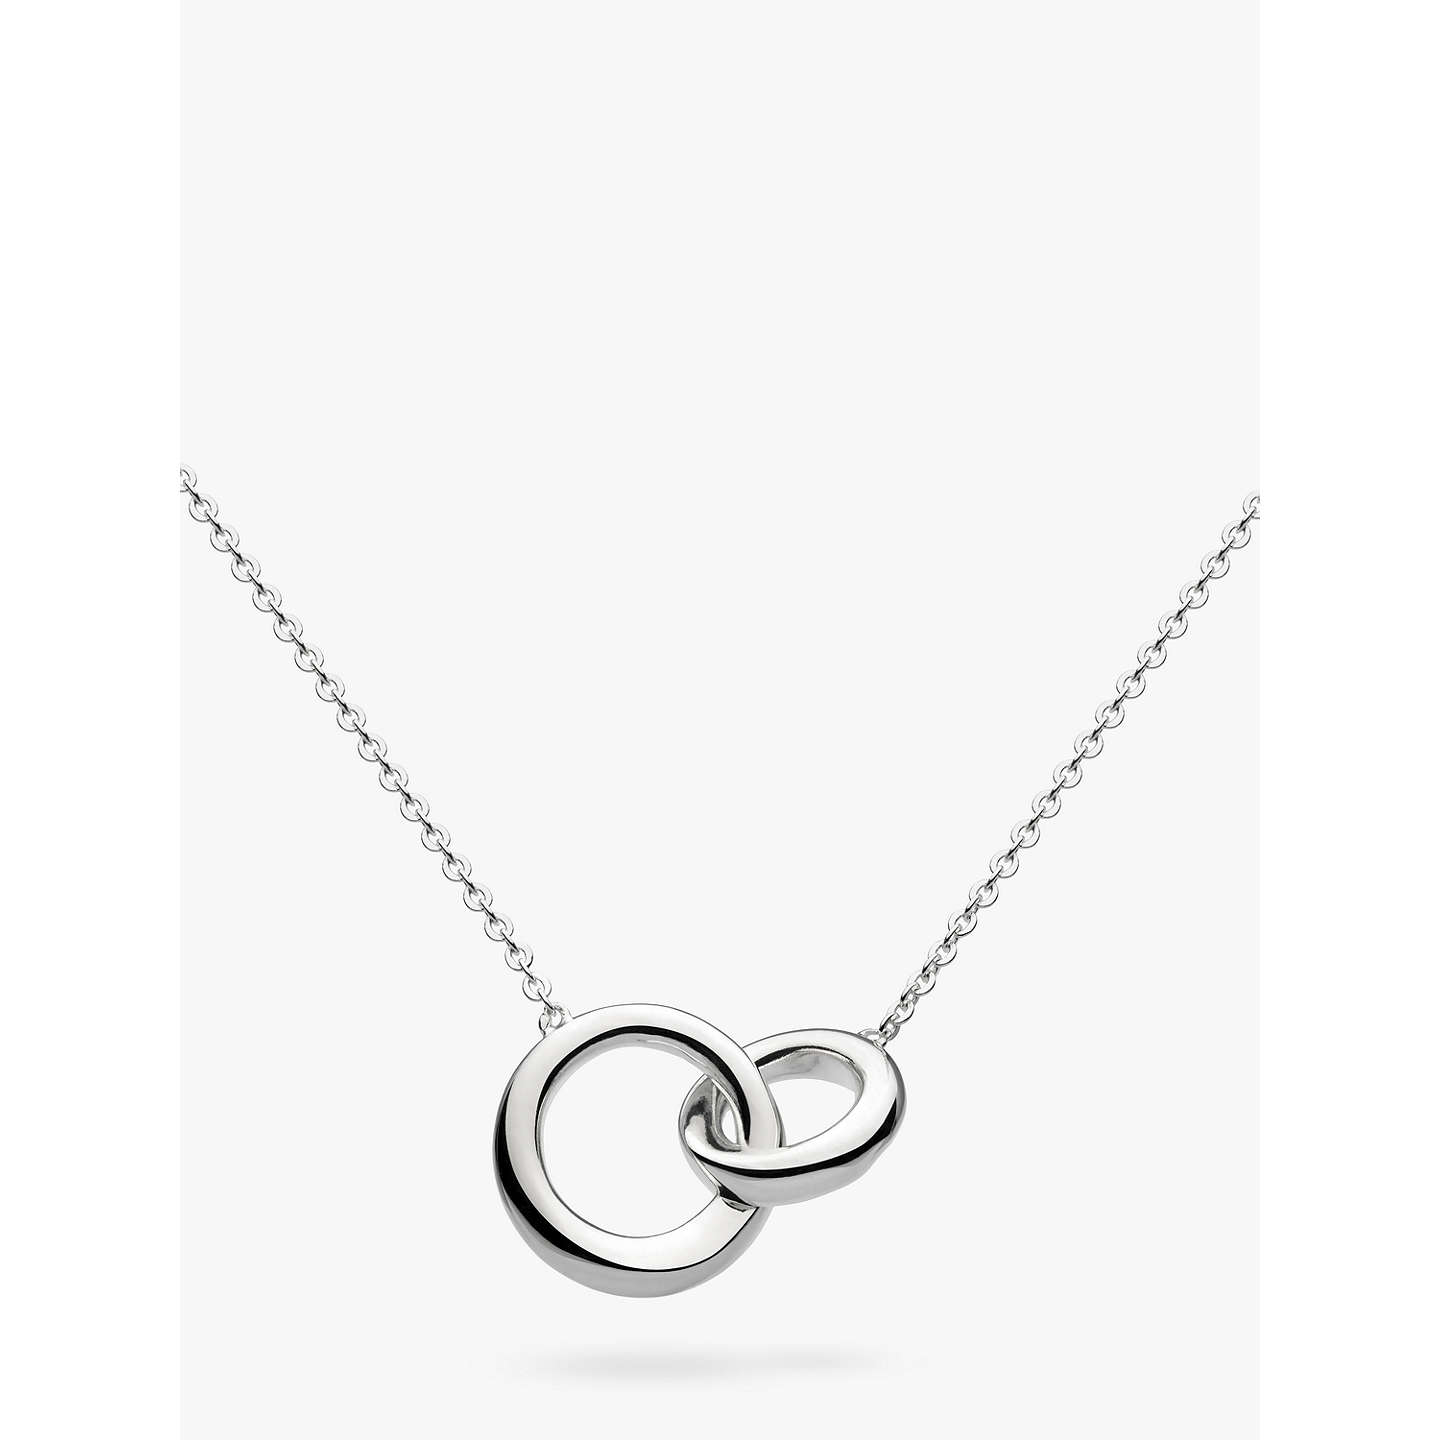 chain silver eternity on large necklace shop ring tilly stirling sveaas a